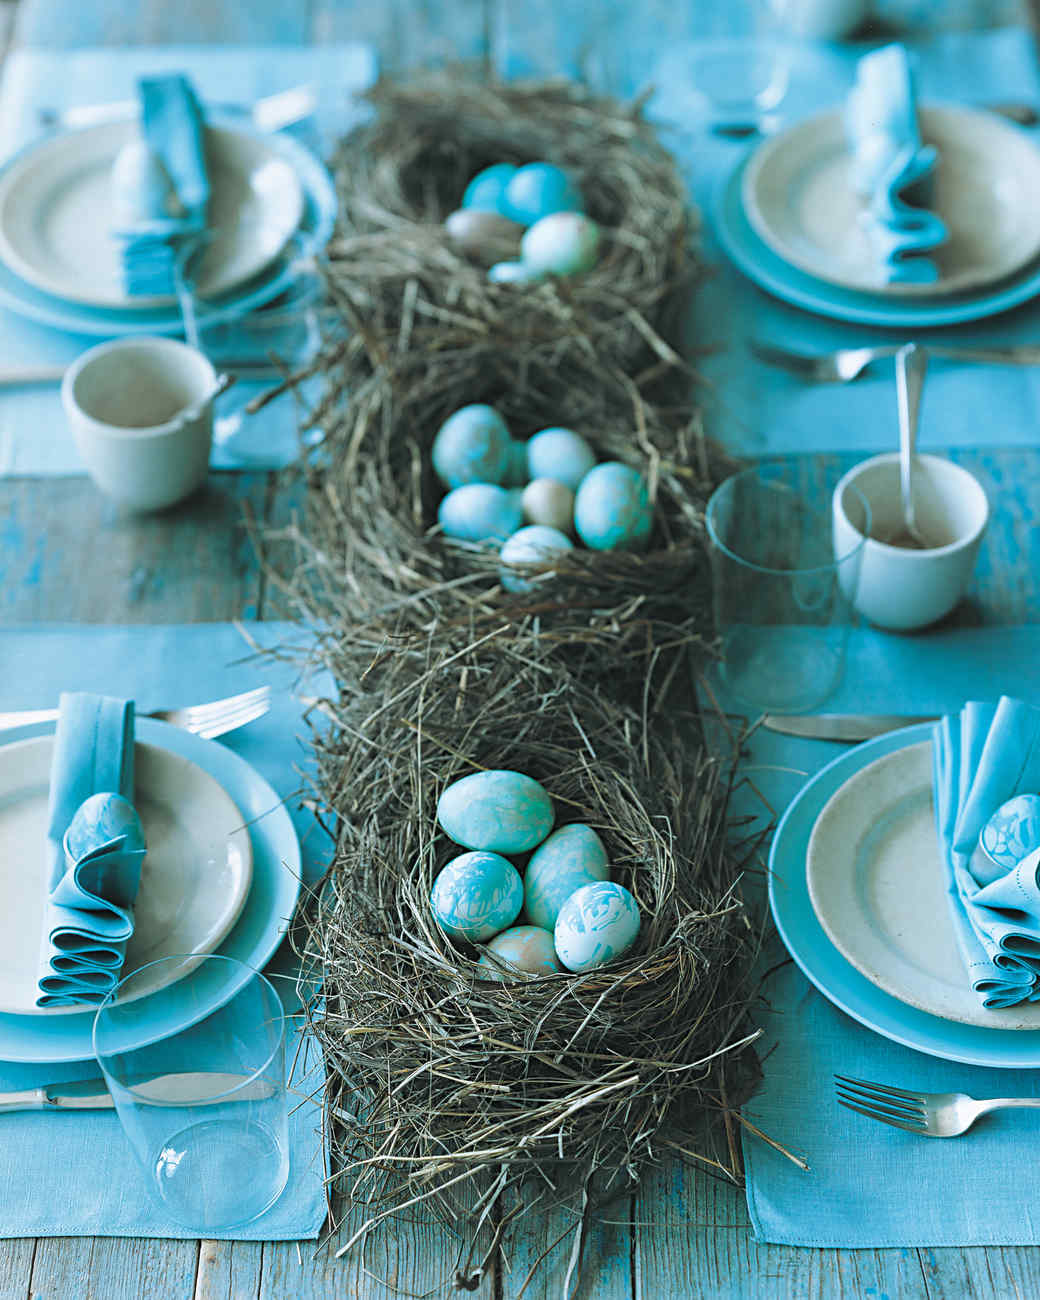 Marbleized Egg Table Setting